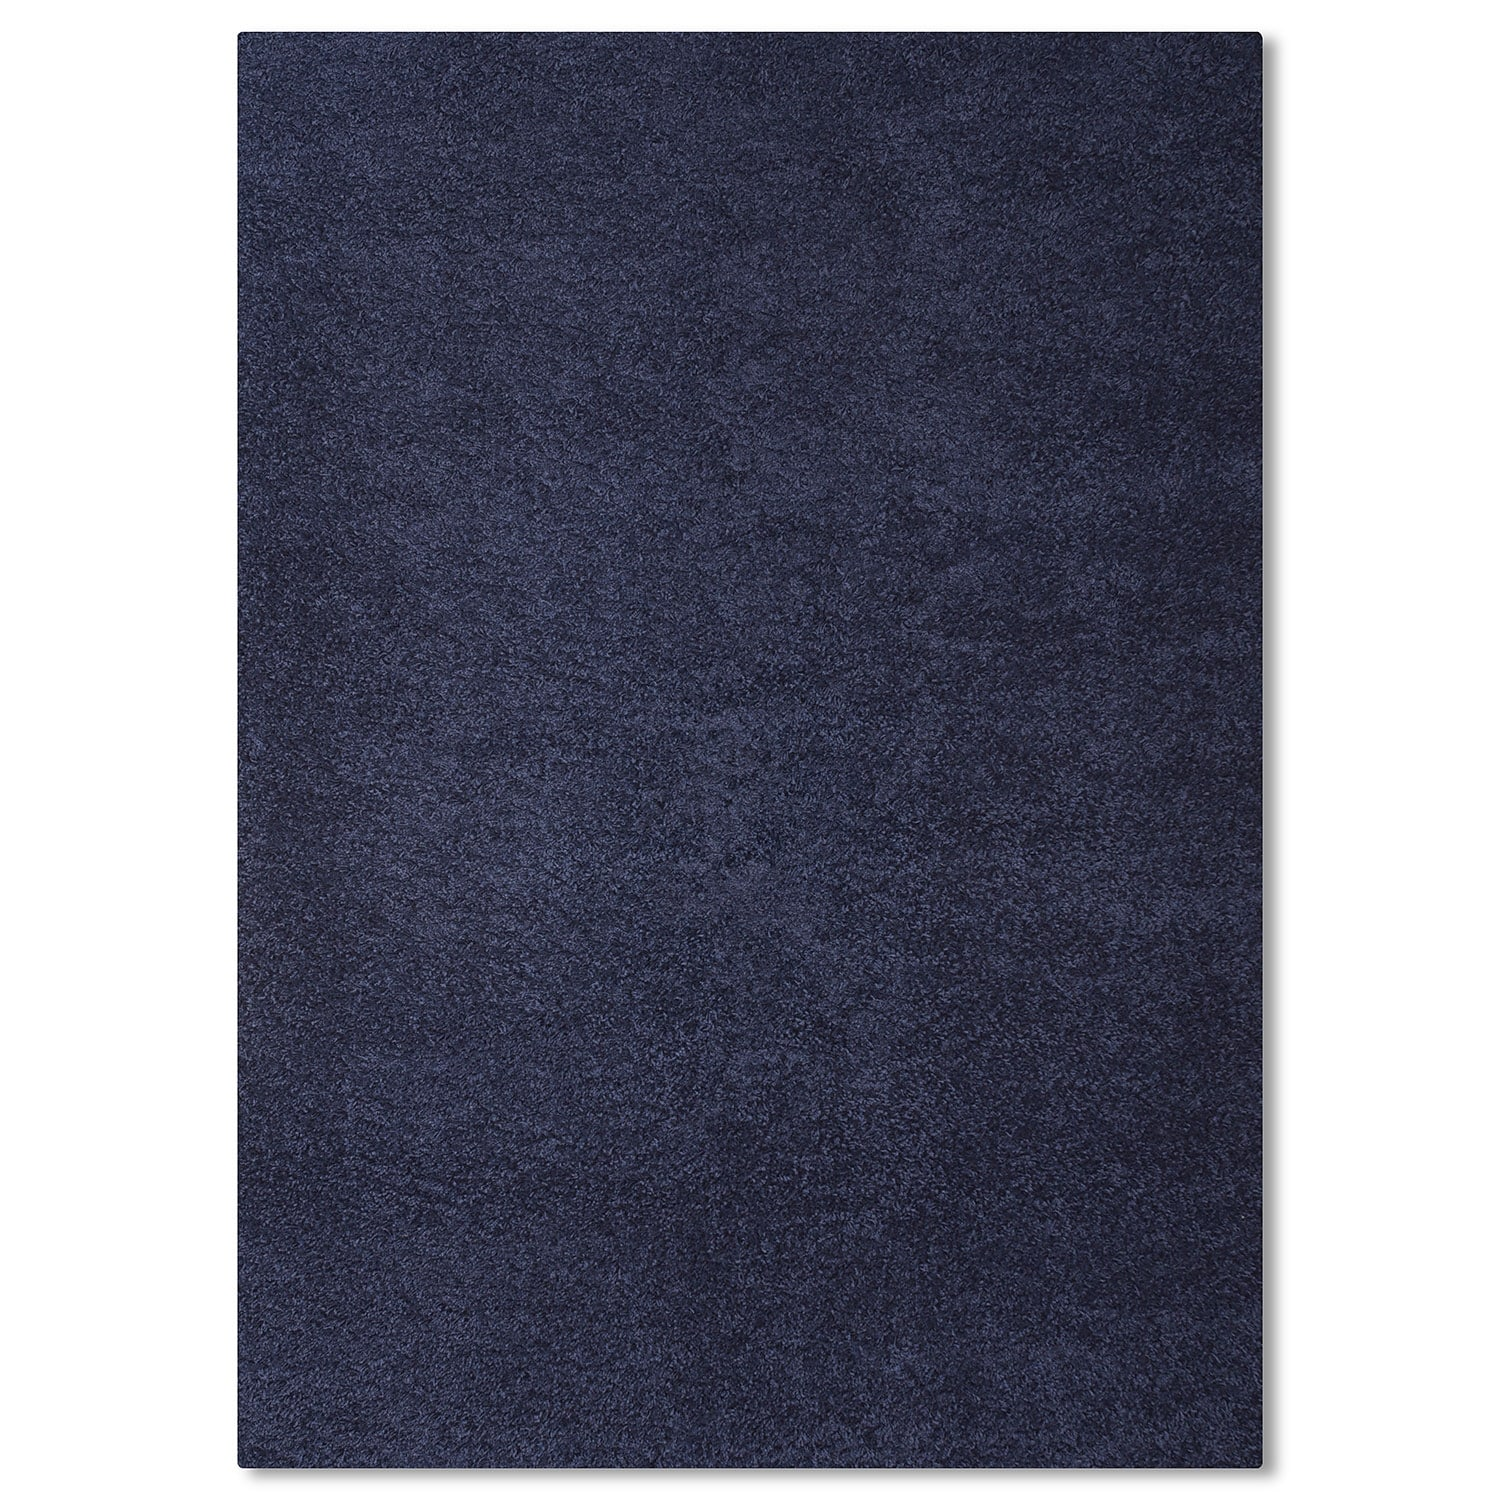 Rugs - Domino Blue Shag Area Rug (5' x 8')